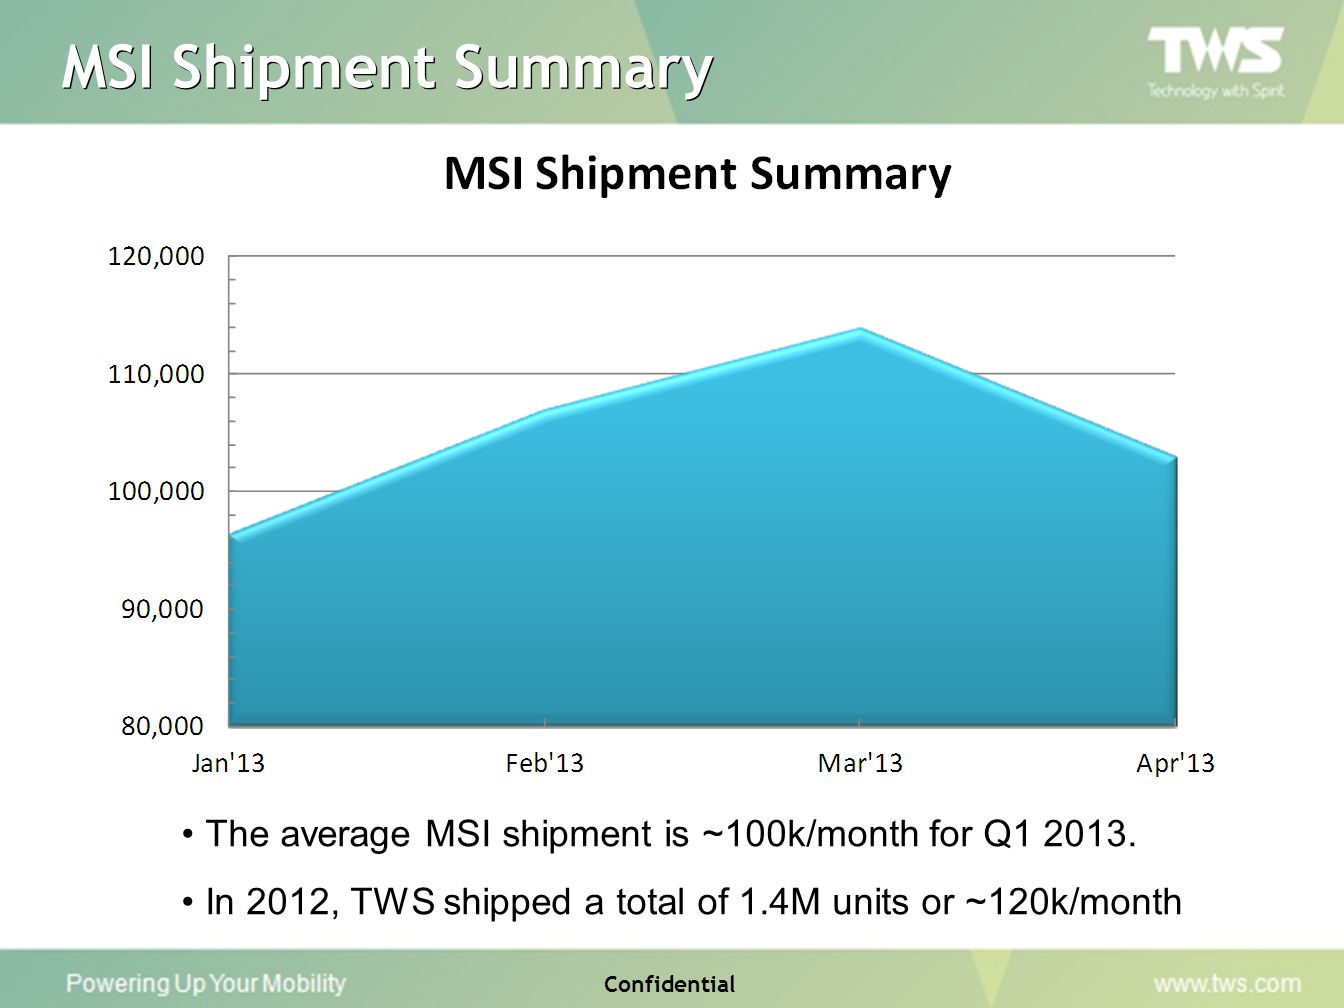 Confidential MSI Shipment Summary The average MSI shipment is ~100k/month for Q1 2013. In 2012, TWS shipped a total of 1.4M units or ~120k/month